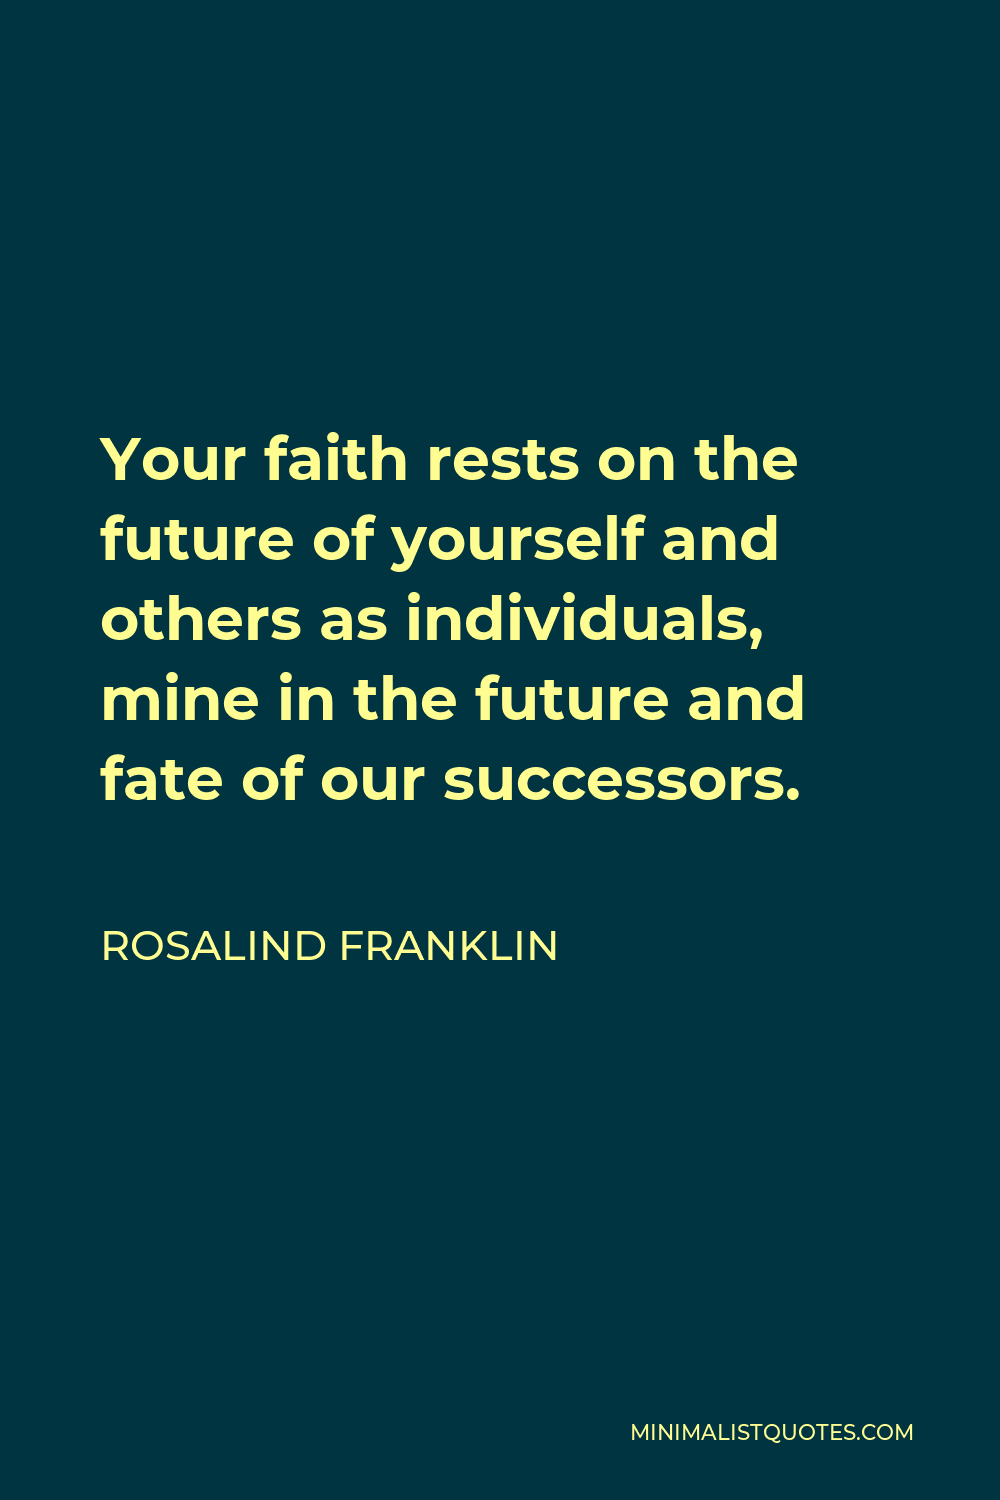 Rosalind Franklin Quote - Your faith rests on the future of yourself and others as individuals, mine in the future and fate of our successors.